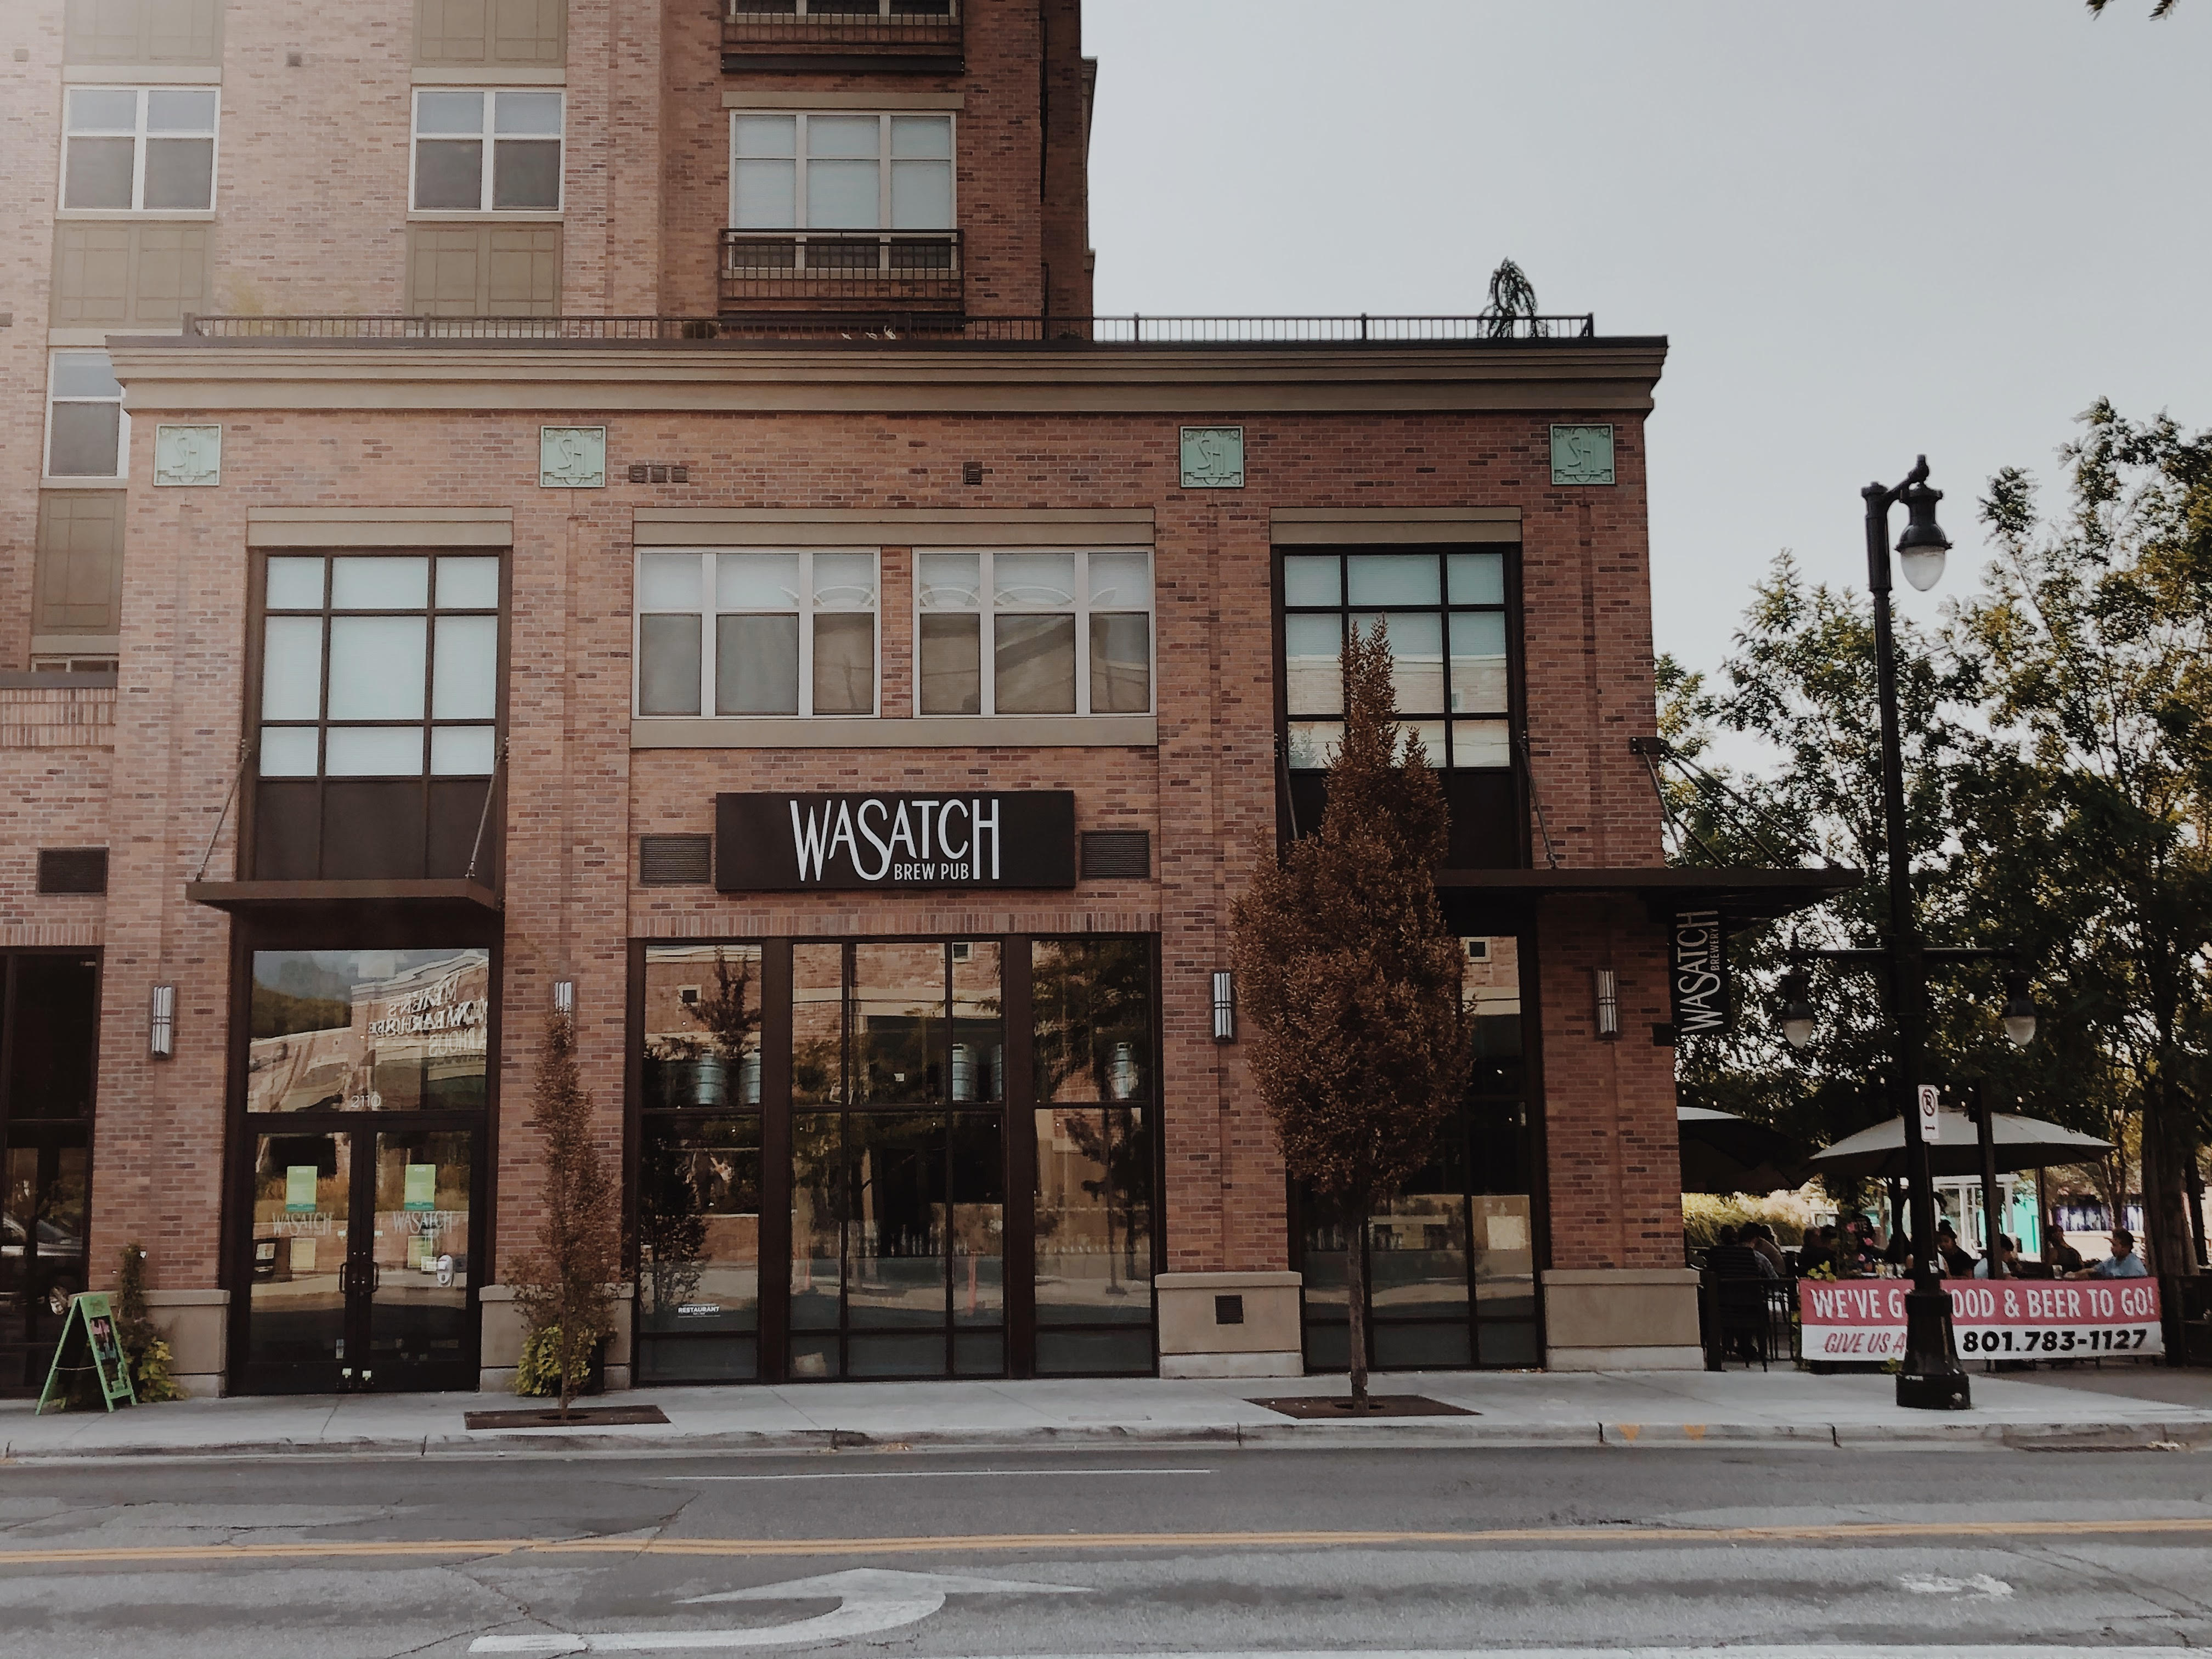 This is a photo of Wasatch Brewery in Sugar House